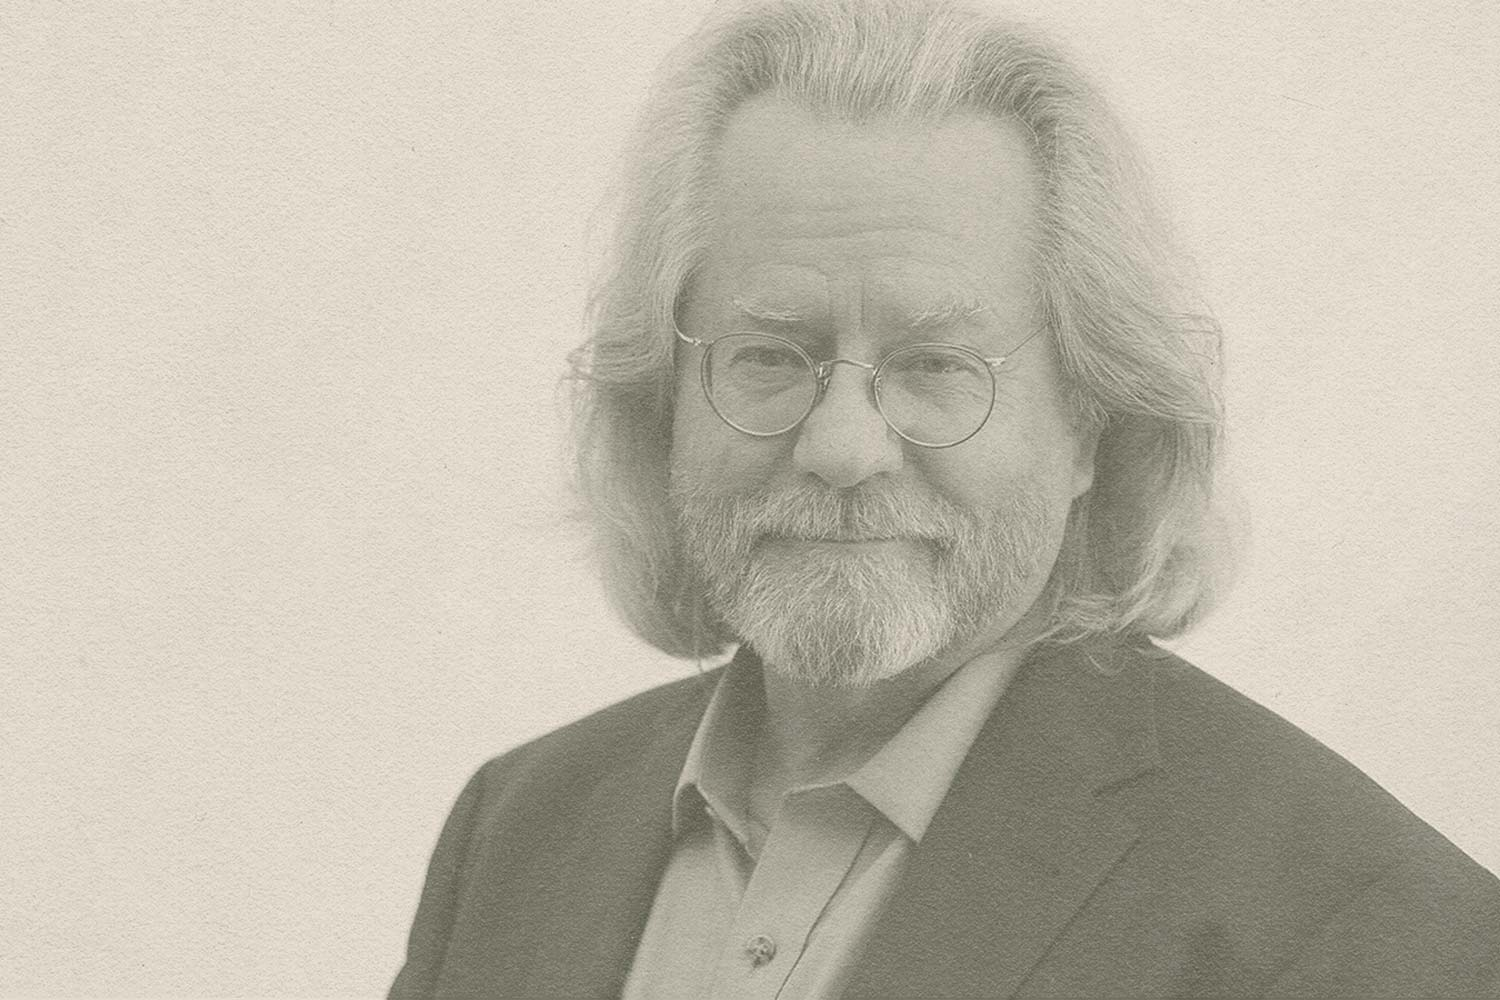 A. C. Grayling looking at the camera